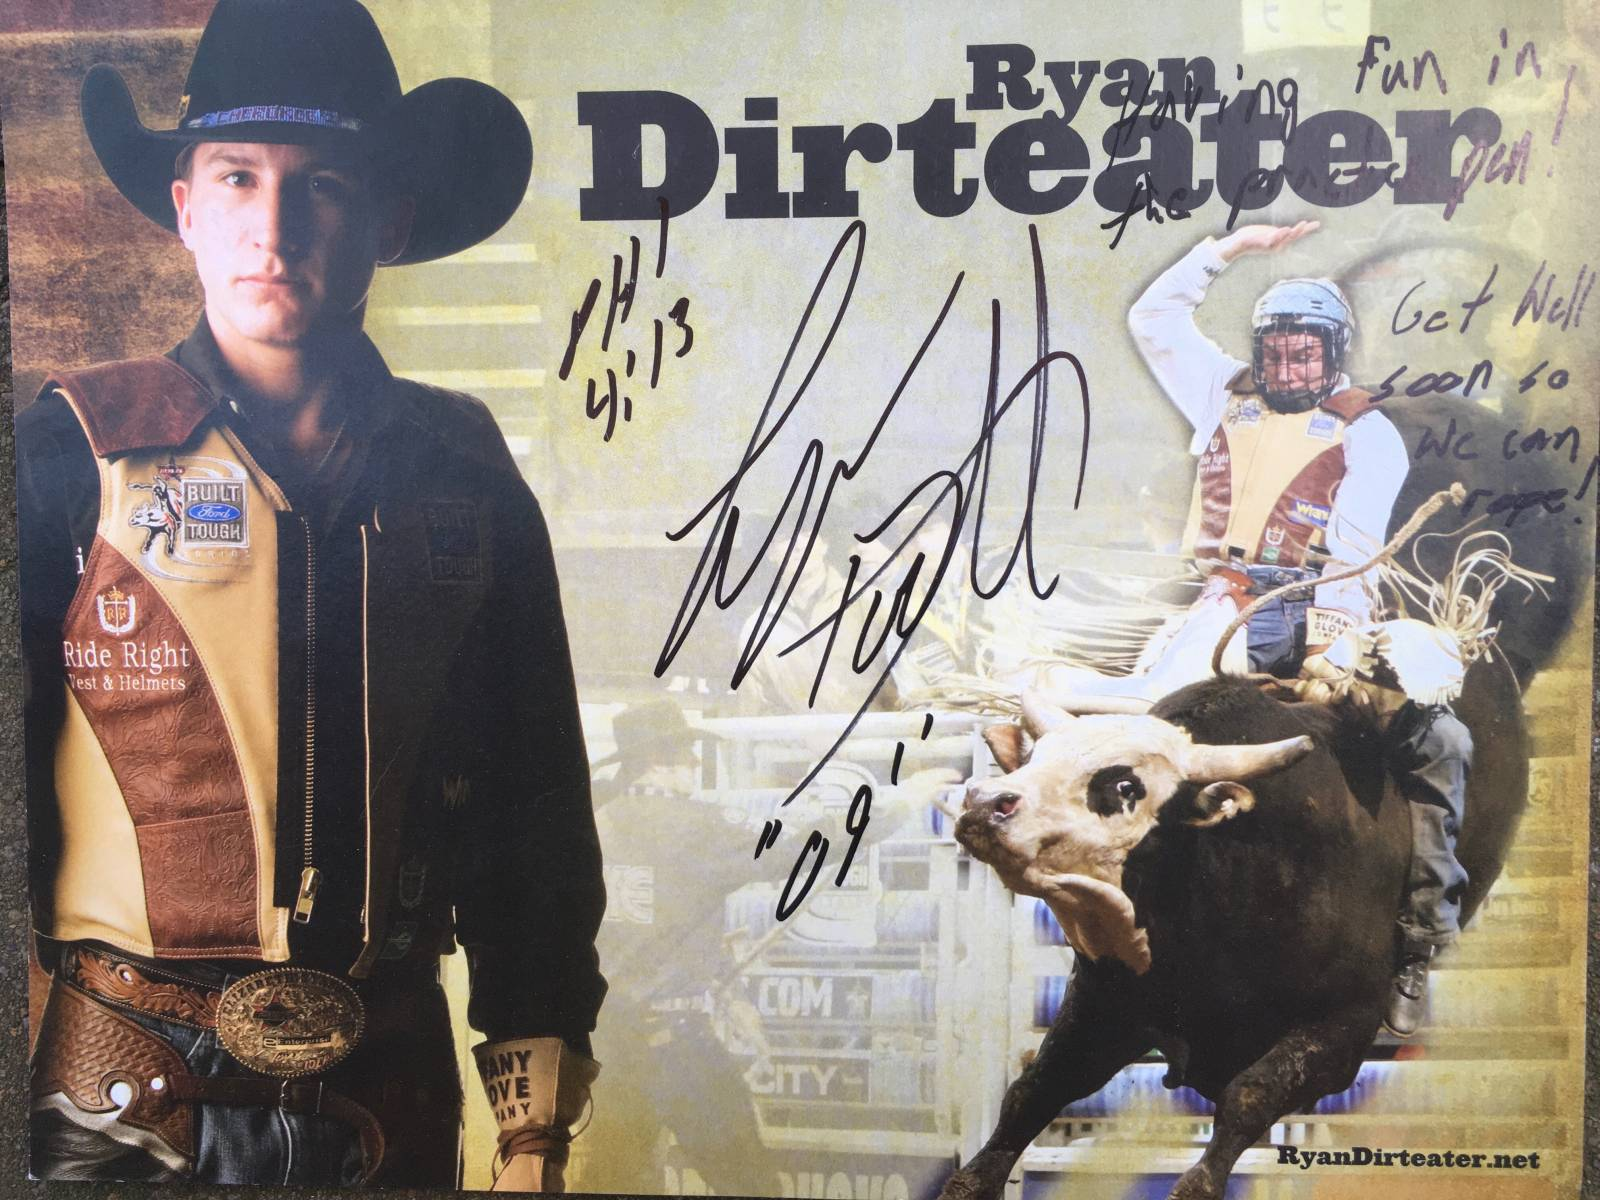 """My buddy, Ryan Dirteater, his rookie year in the PBR! If you look closely we share the same bible verse, Philippians 4:13, """"I can do ALL things through Christ that strengthens me""""."""